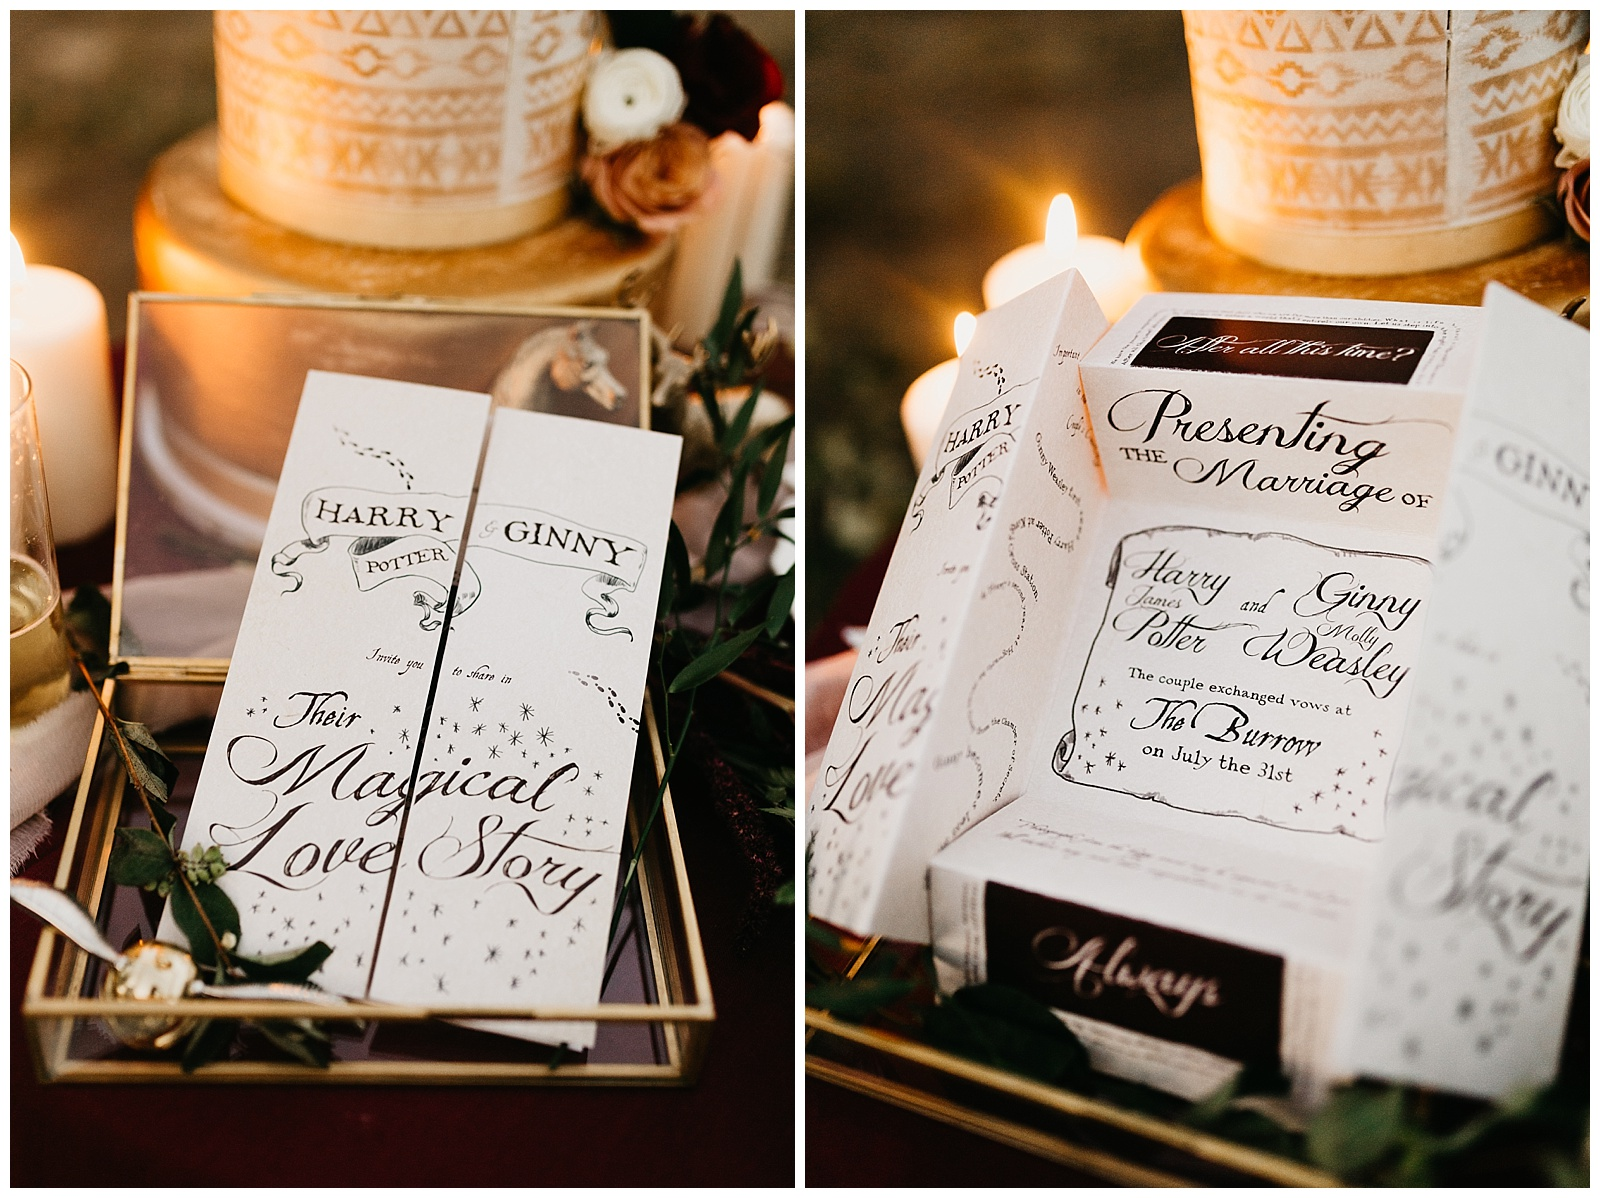 Harry Potter wedding invitations